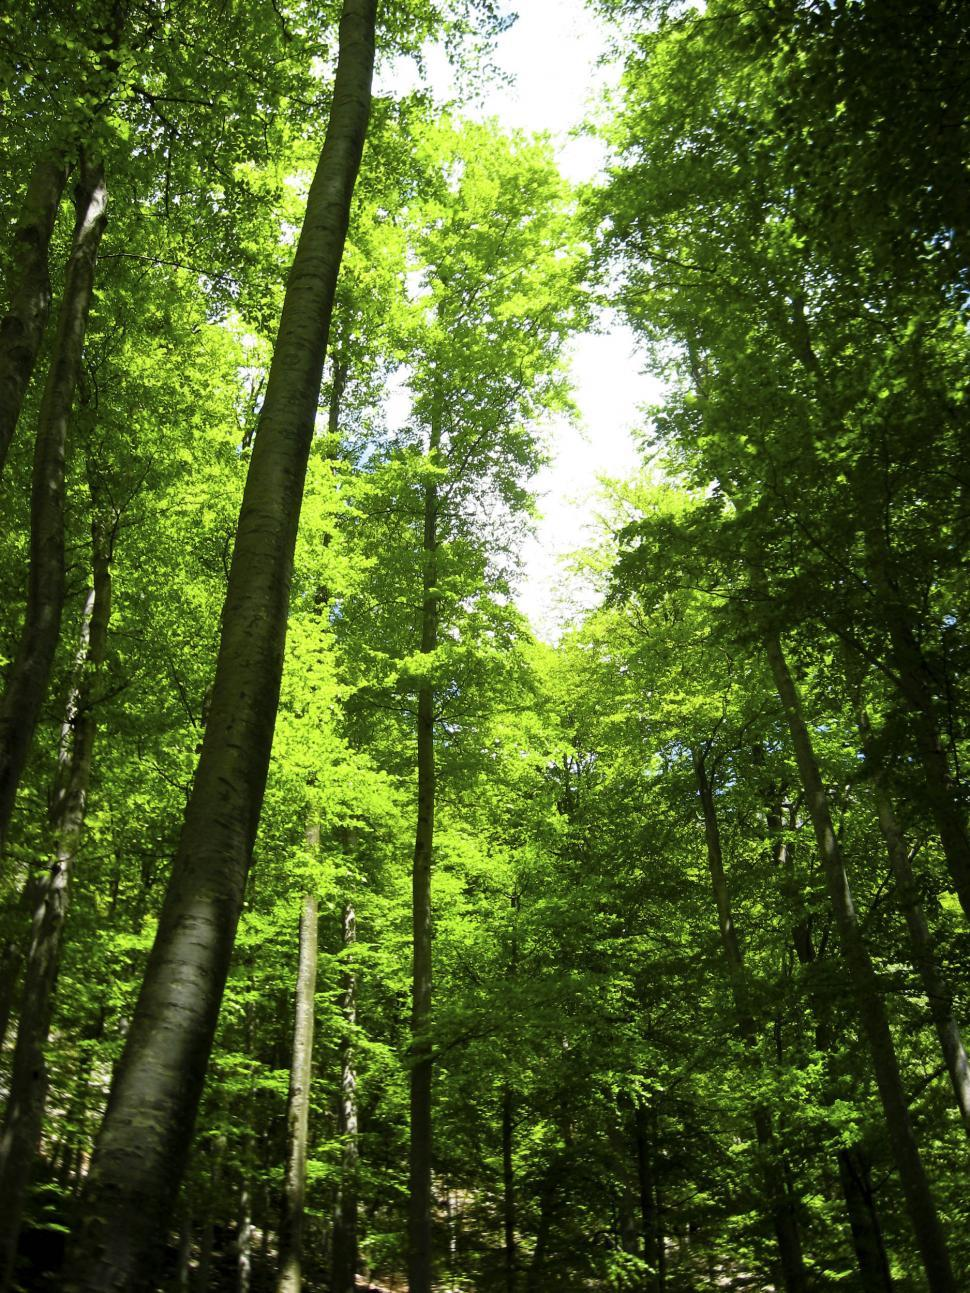 Free image of Tall trees form the canopy of a lush green forest